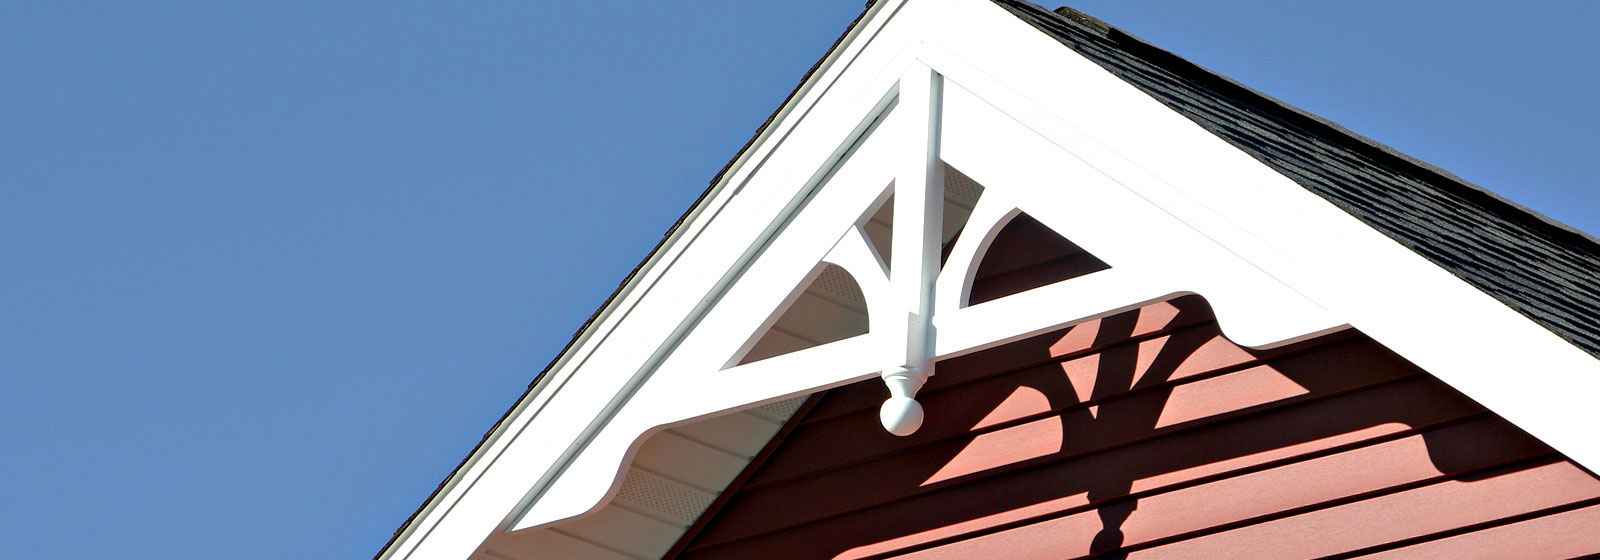 Gable pediments gable decorations shop diy Gable accents